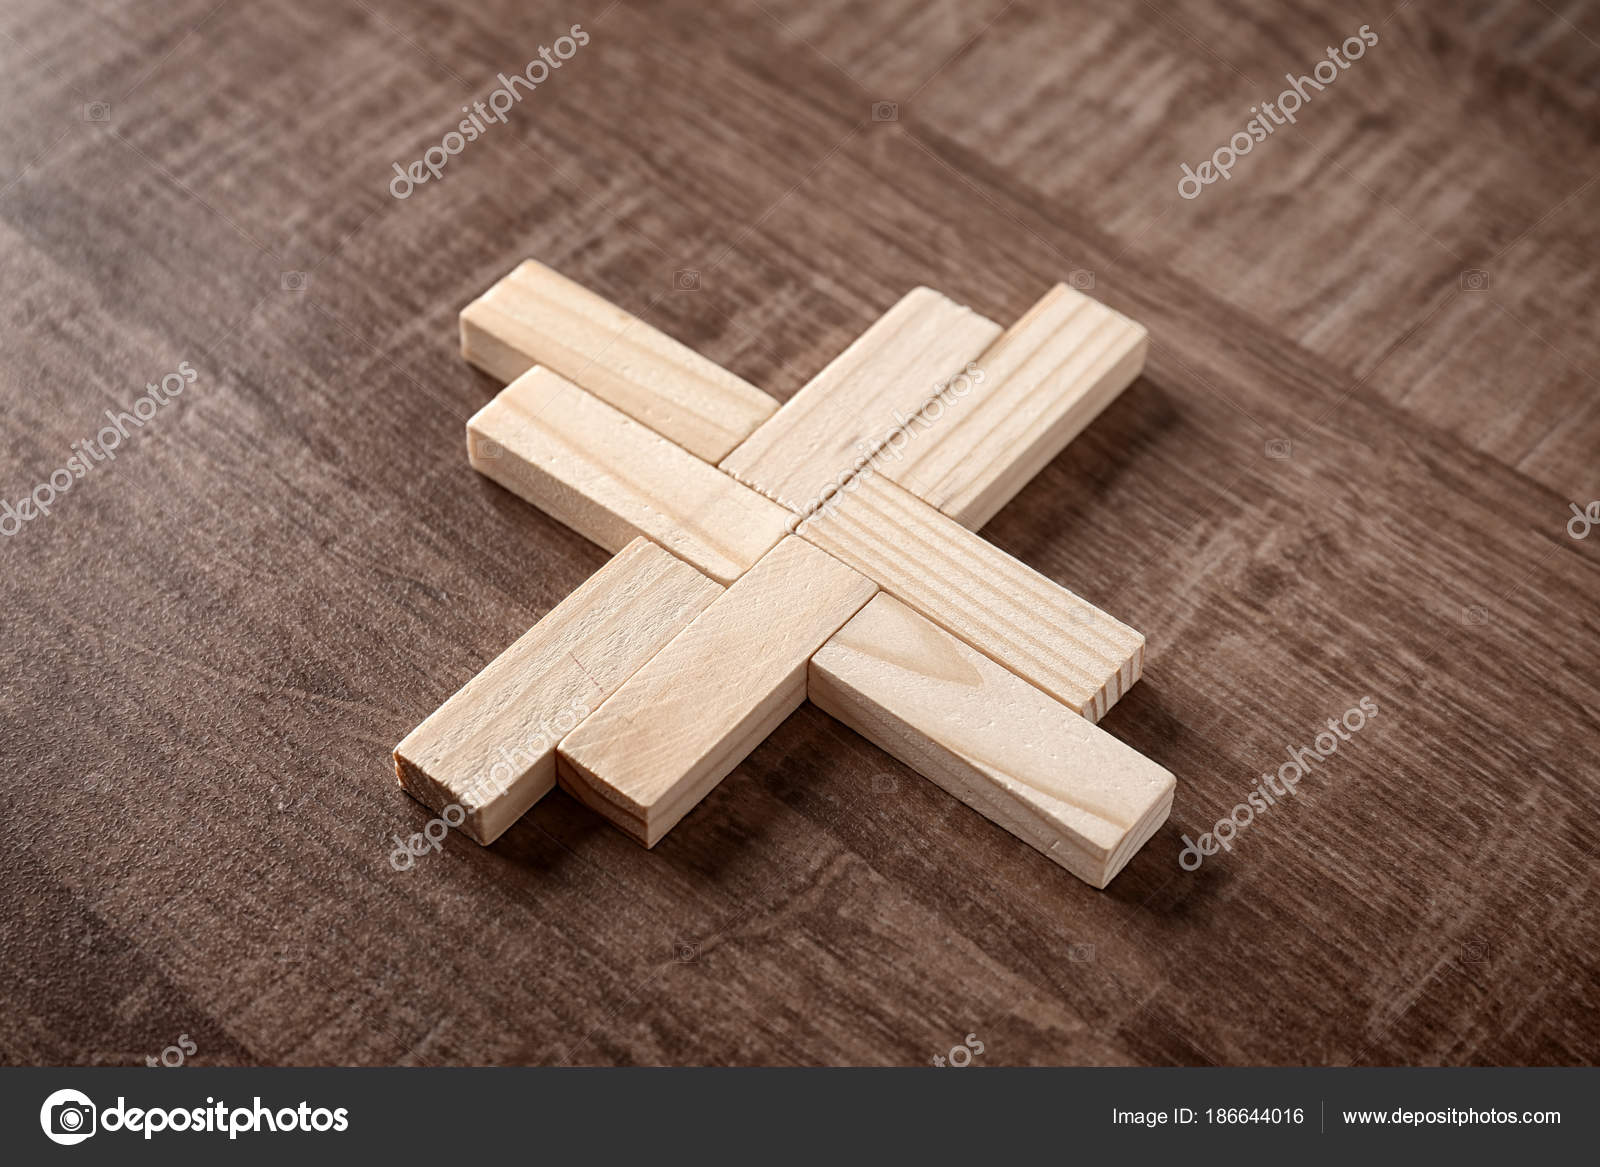 Wooden Blocks On Table Unity Concept Stock Photo Belchonock